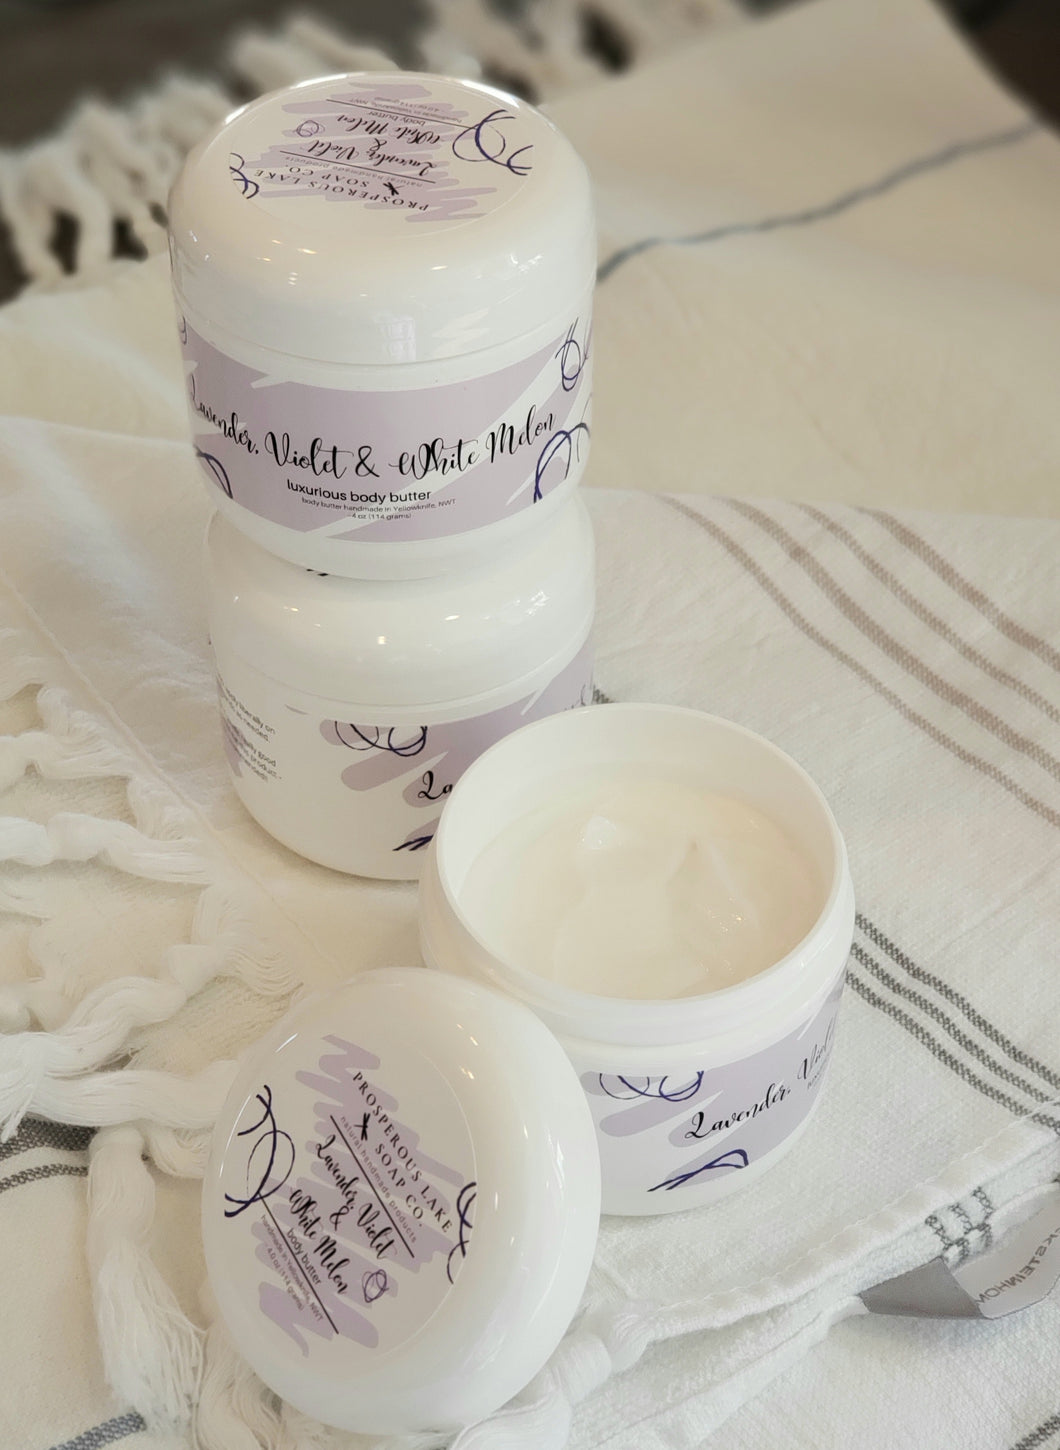 Lavender, Violet and Melon Body Butter